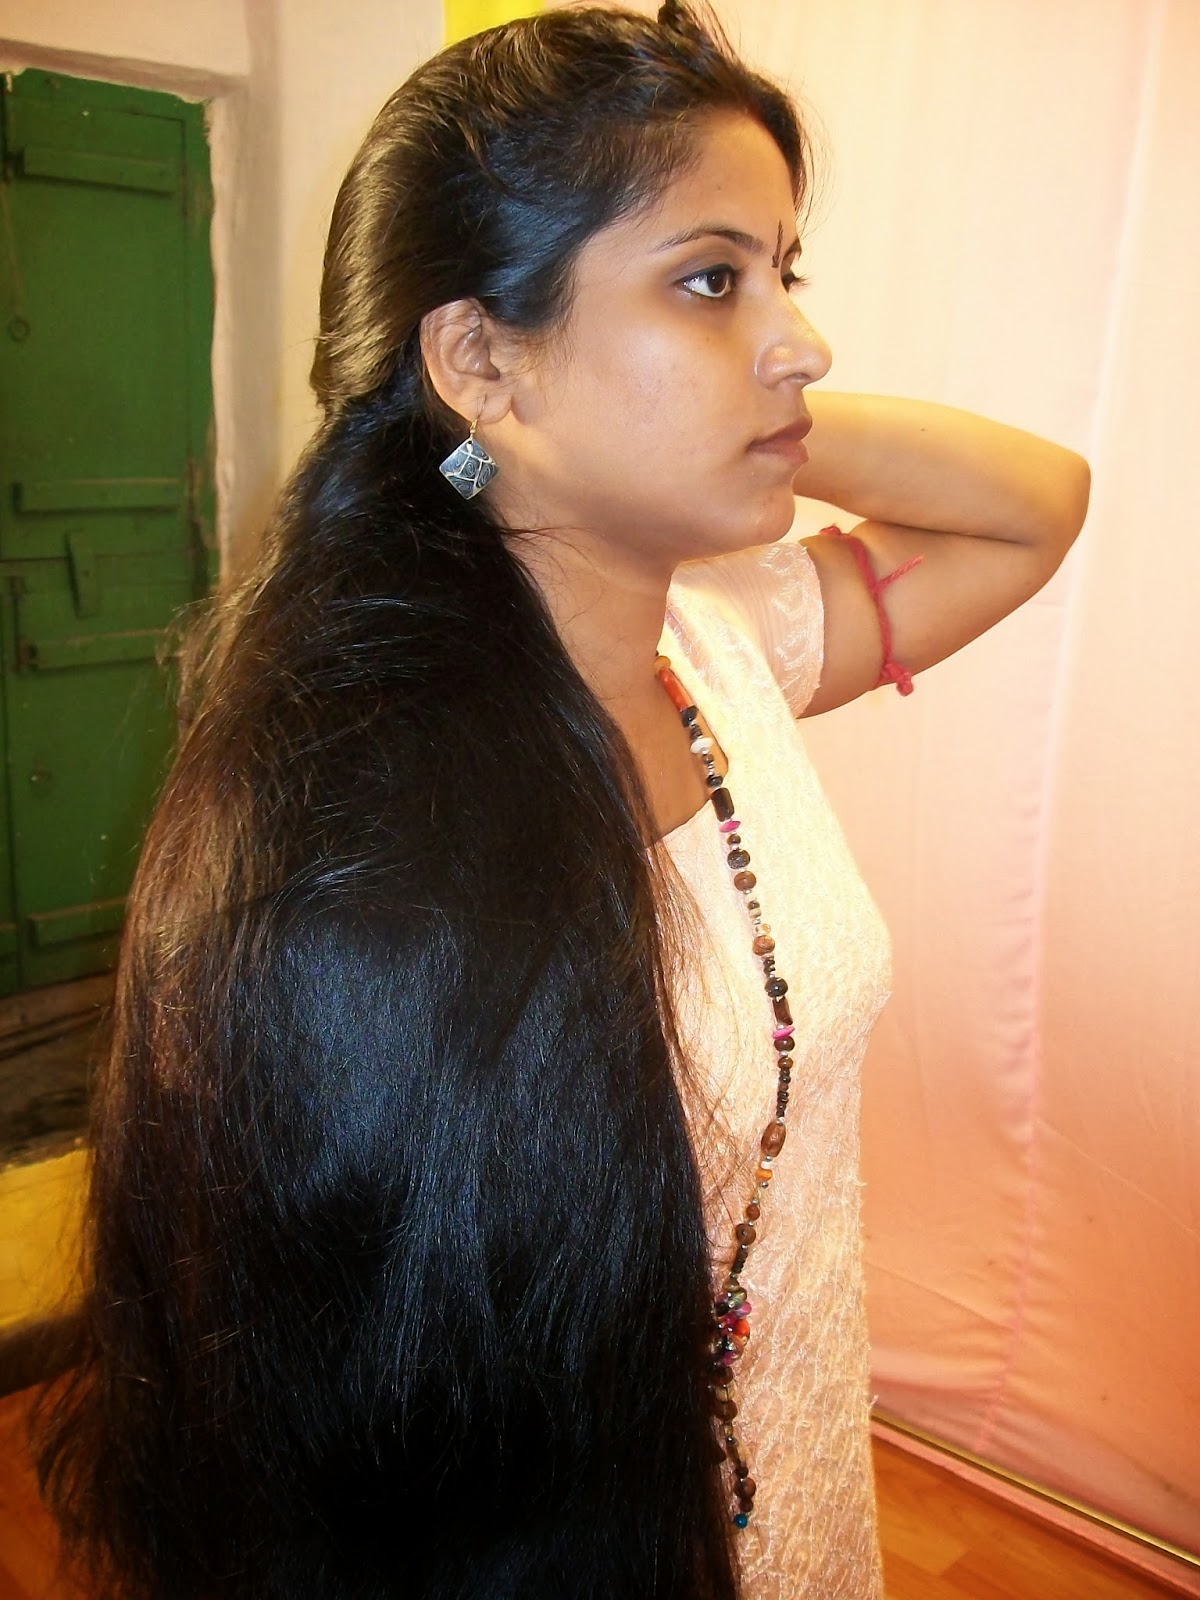 Local chennai hot girl pussy